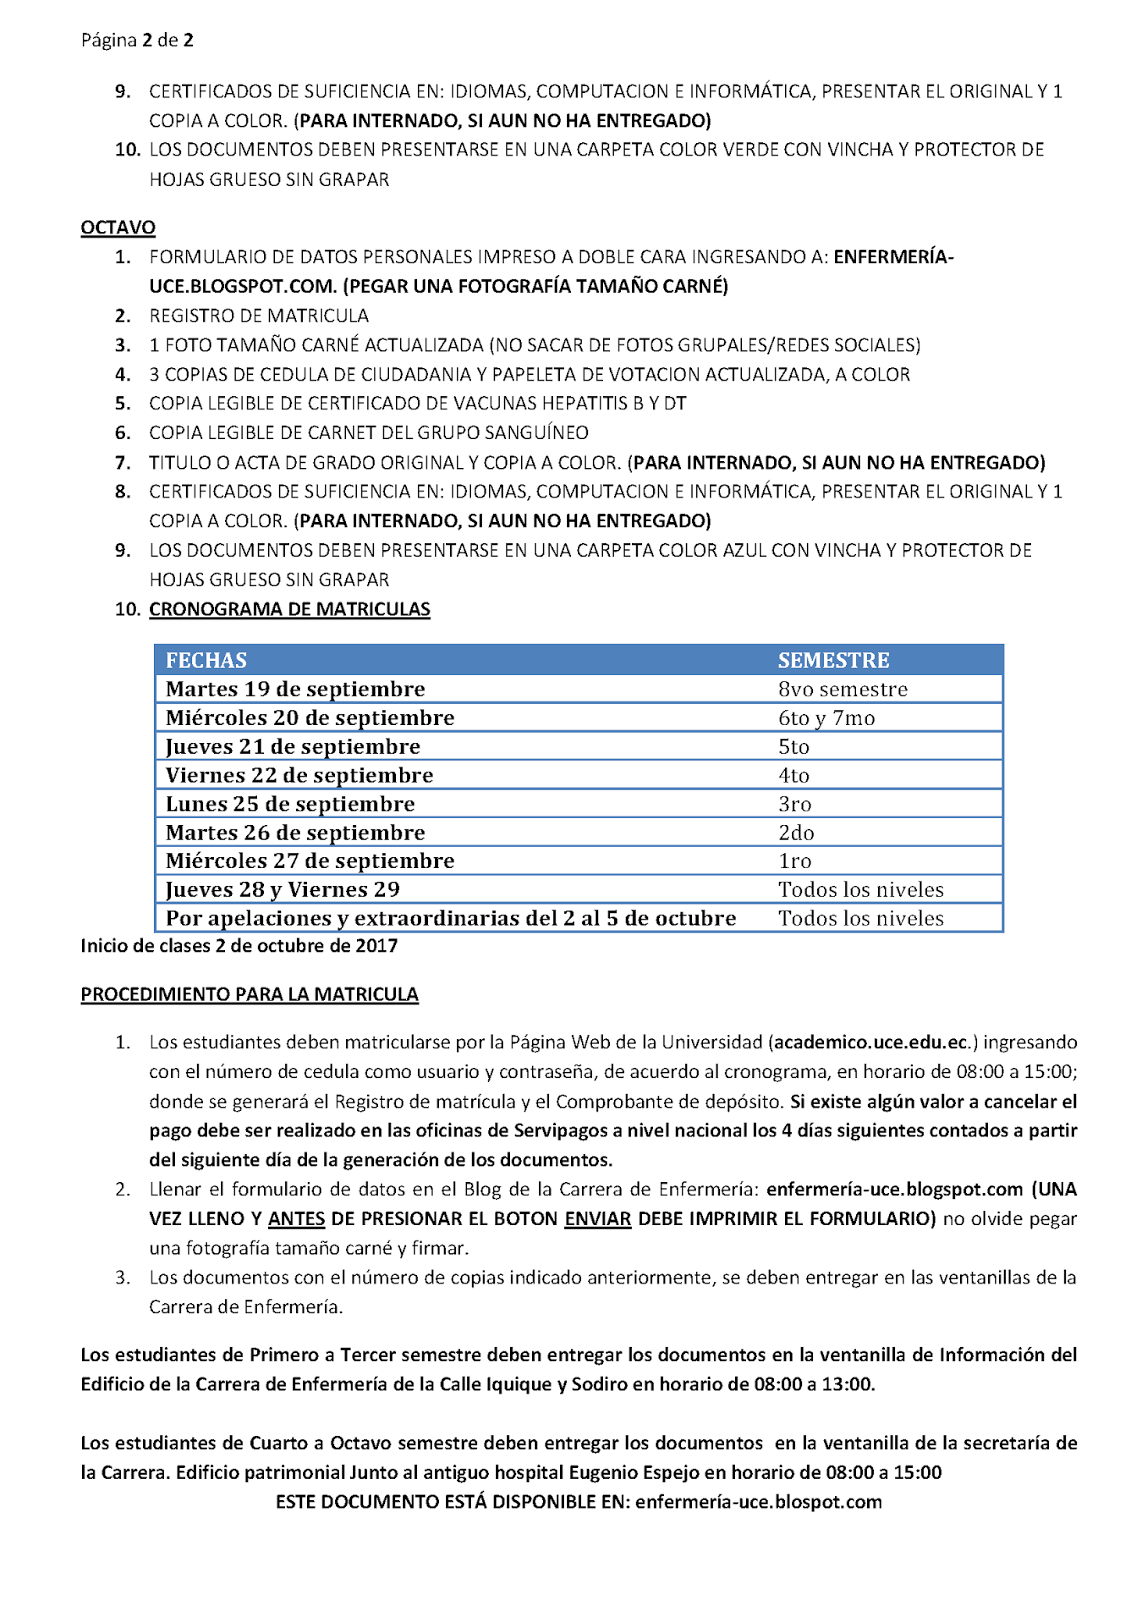 Requisitos Para Hipoteca Creditos Hipotecarios Requisitos 2017 Pdf Sforinraiso